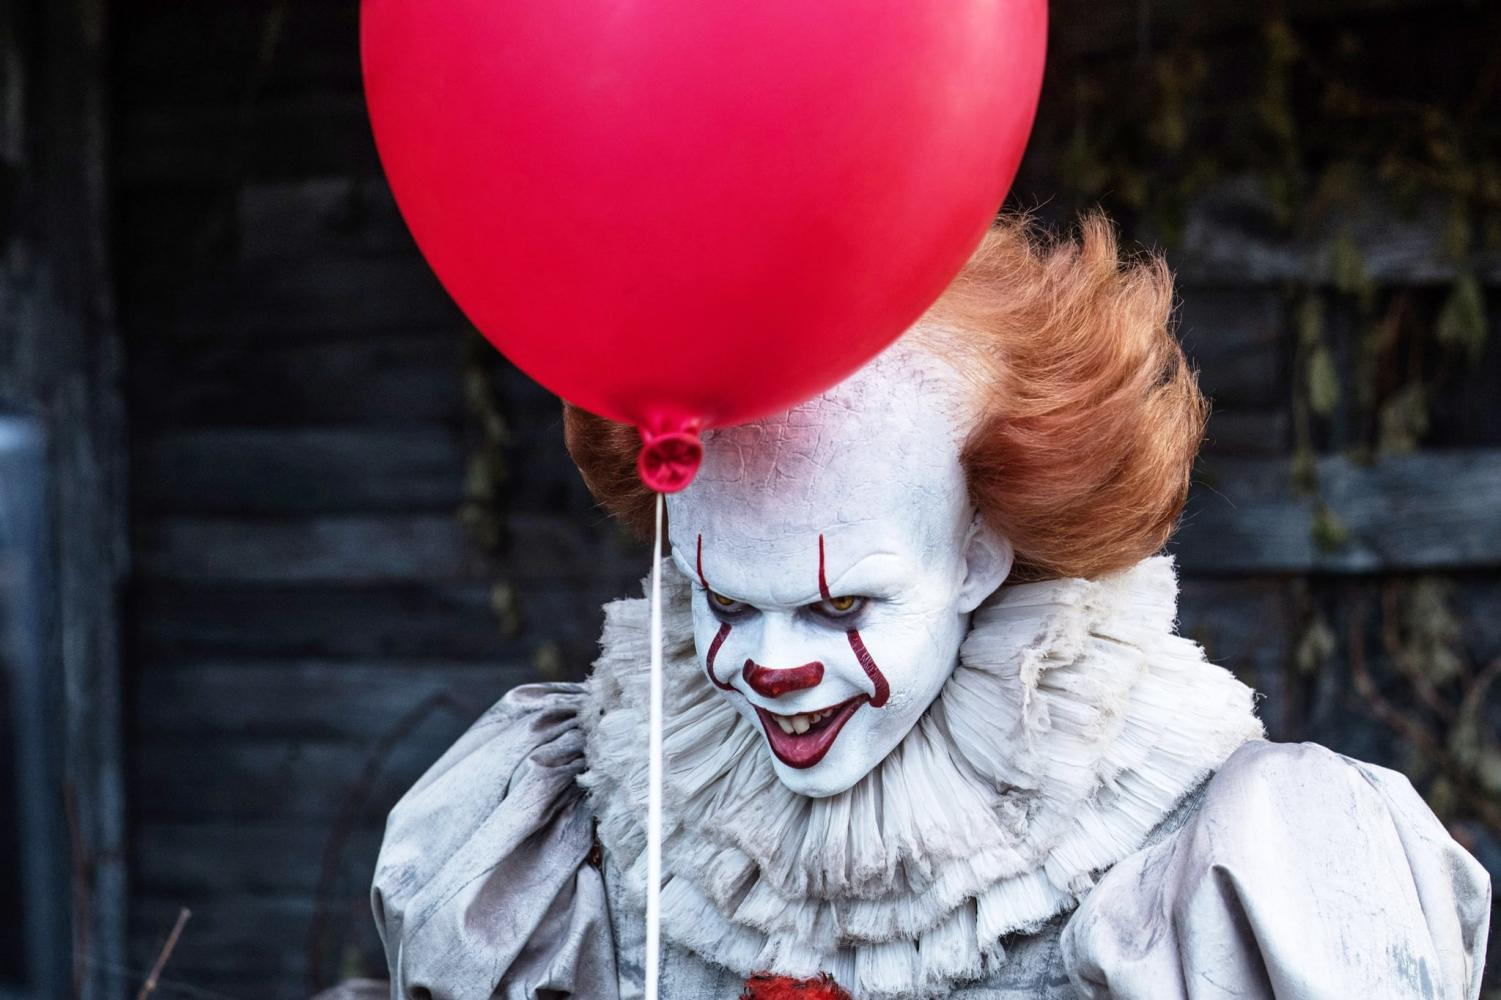 Pennywise the Clown, the main terror of IT 2.